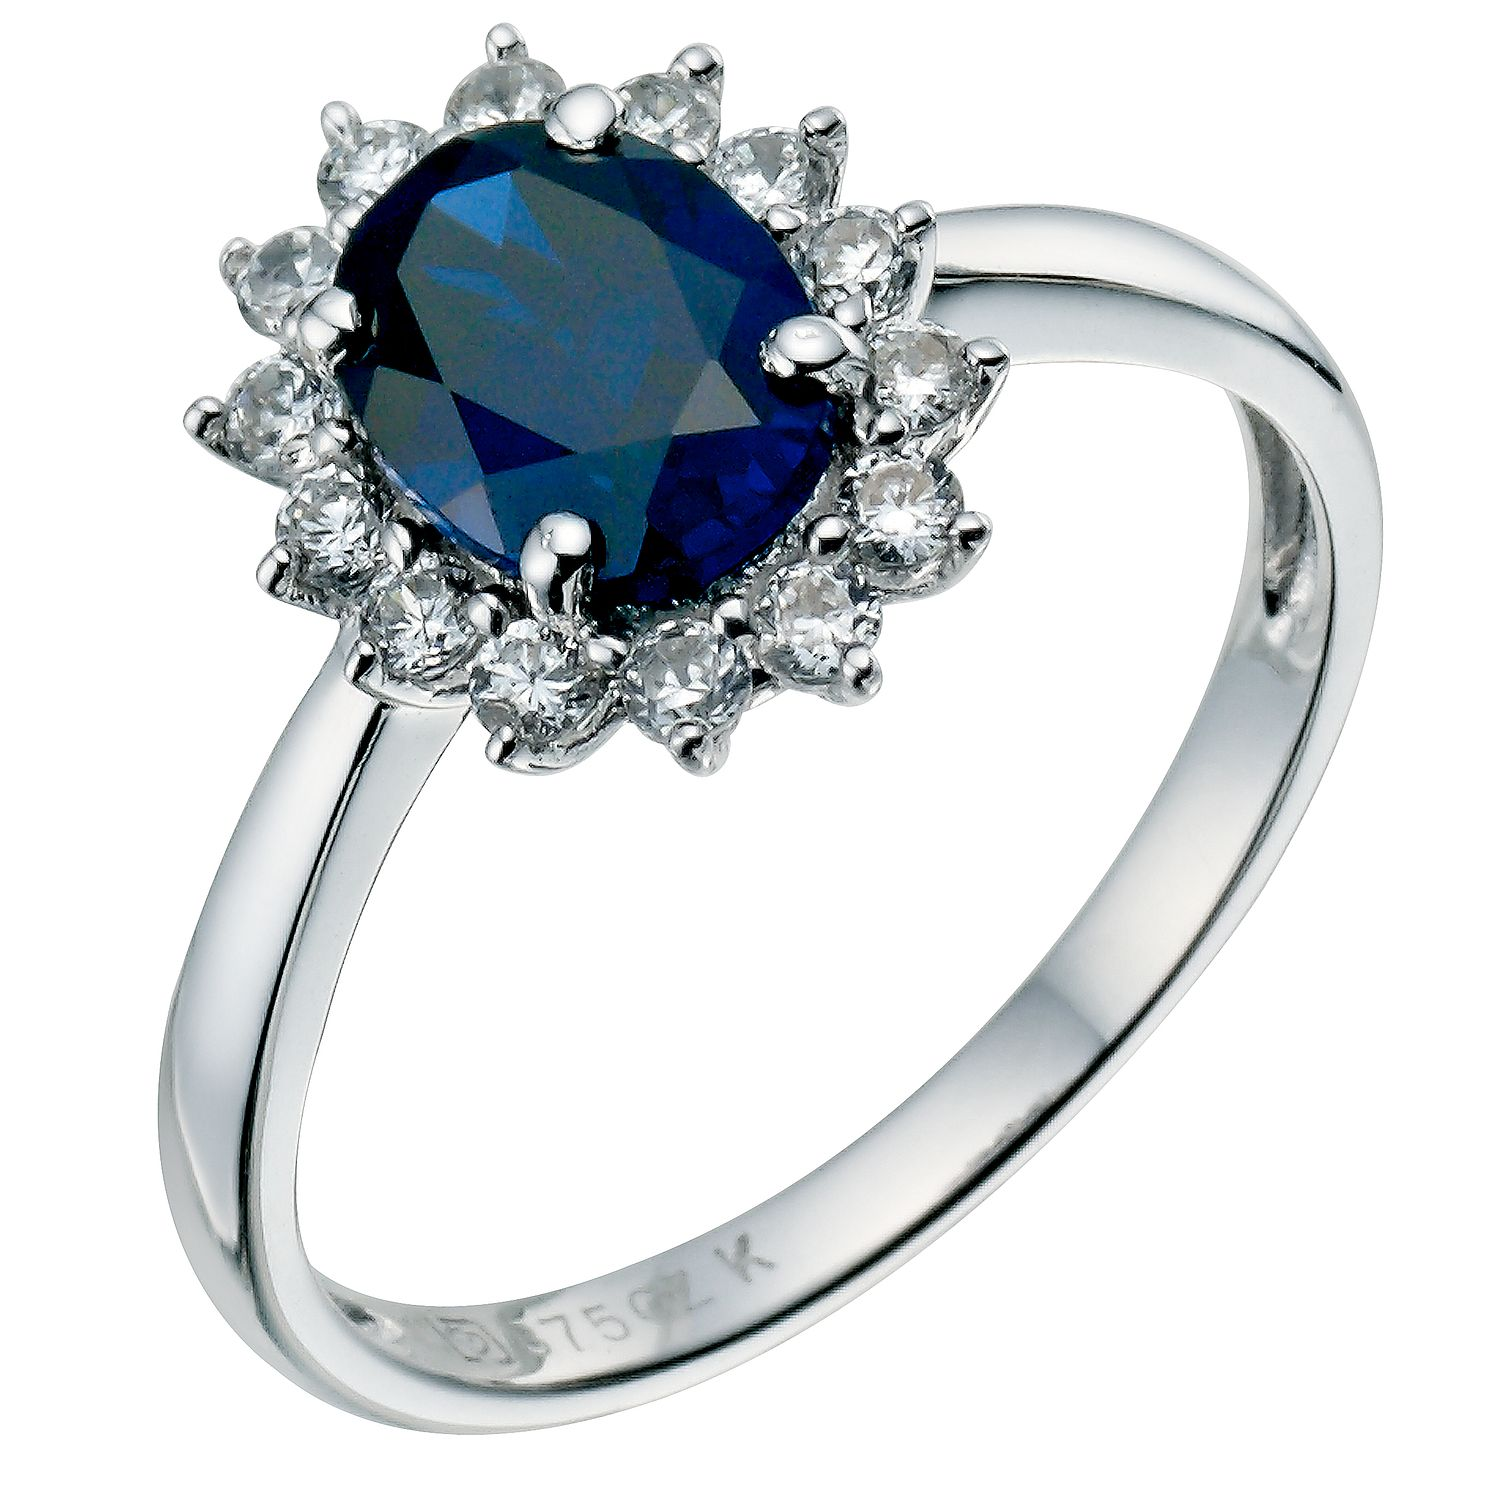 engagement diamond size dark and rare fullxfull listing apprasied blue il rings graded ring